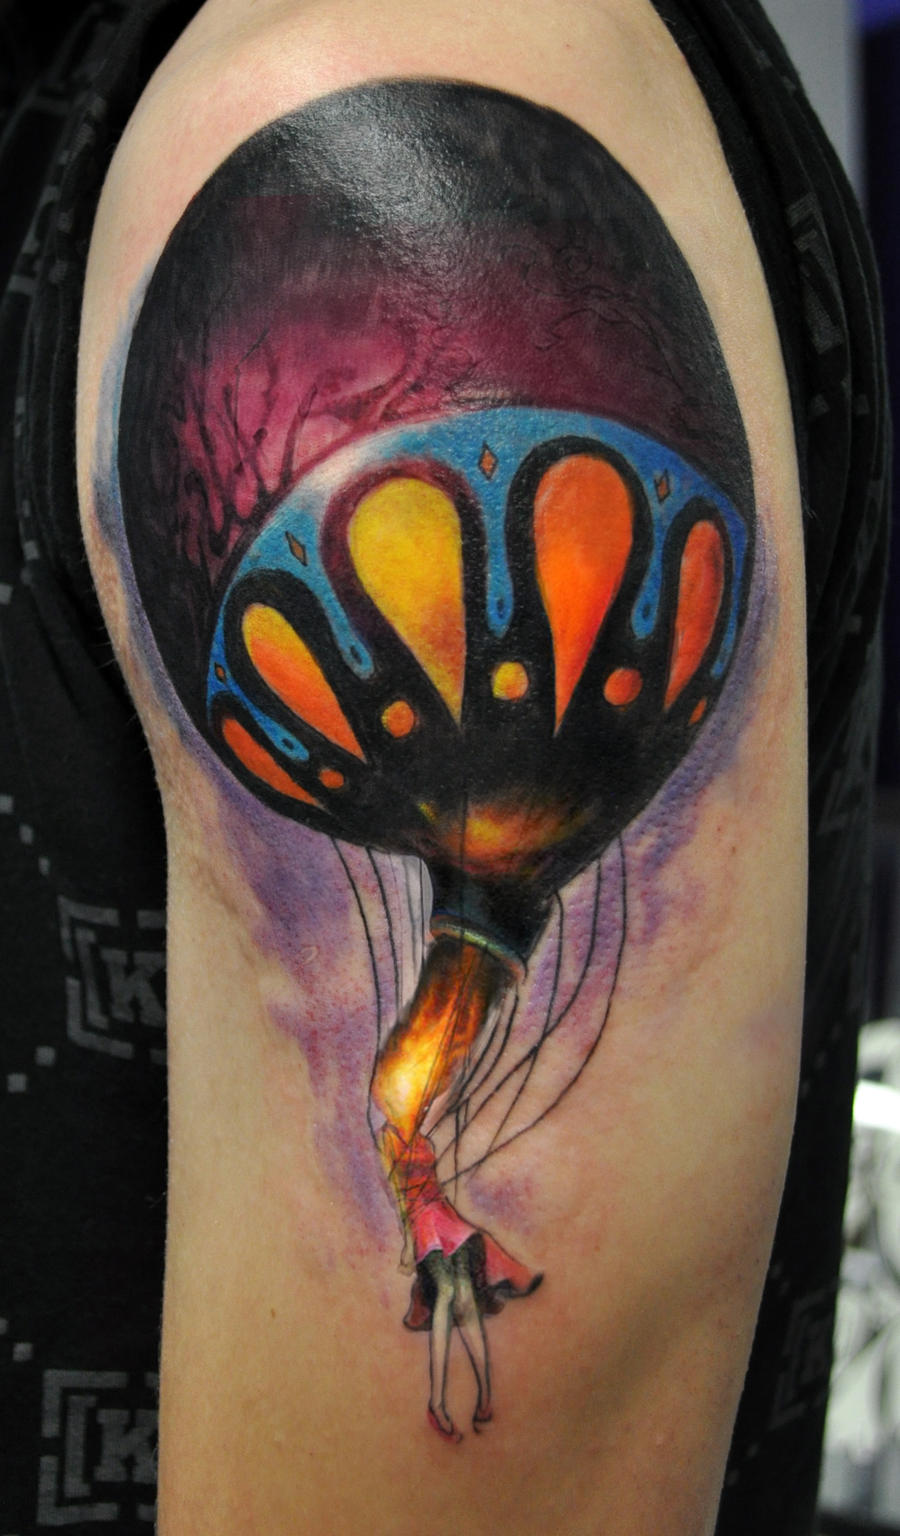 Circa Survive by ScottVersago